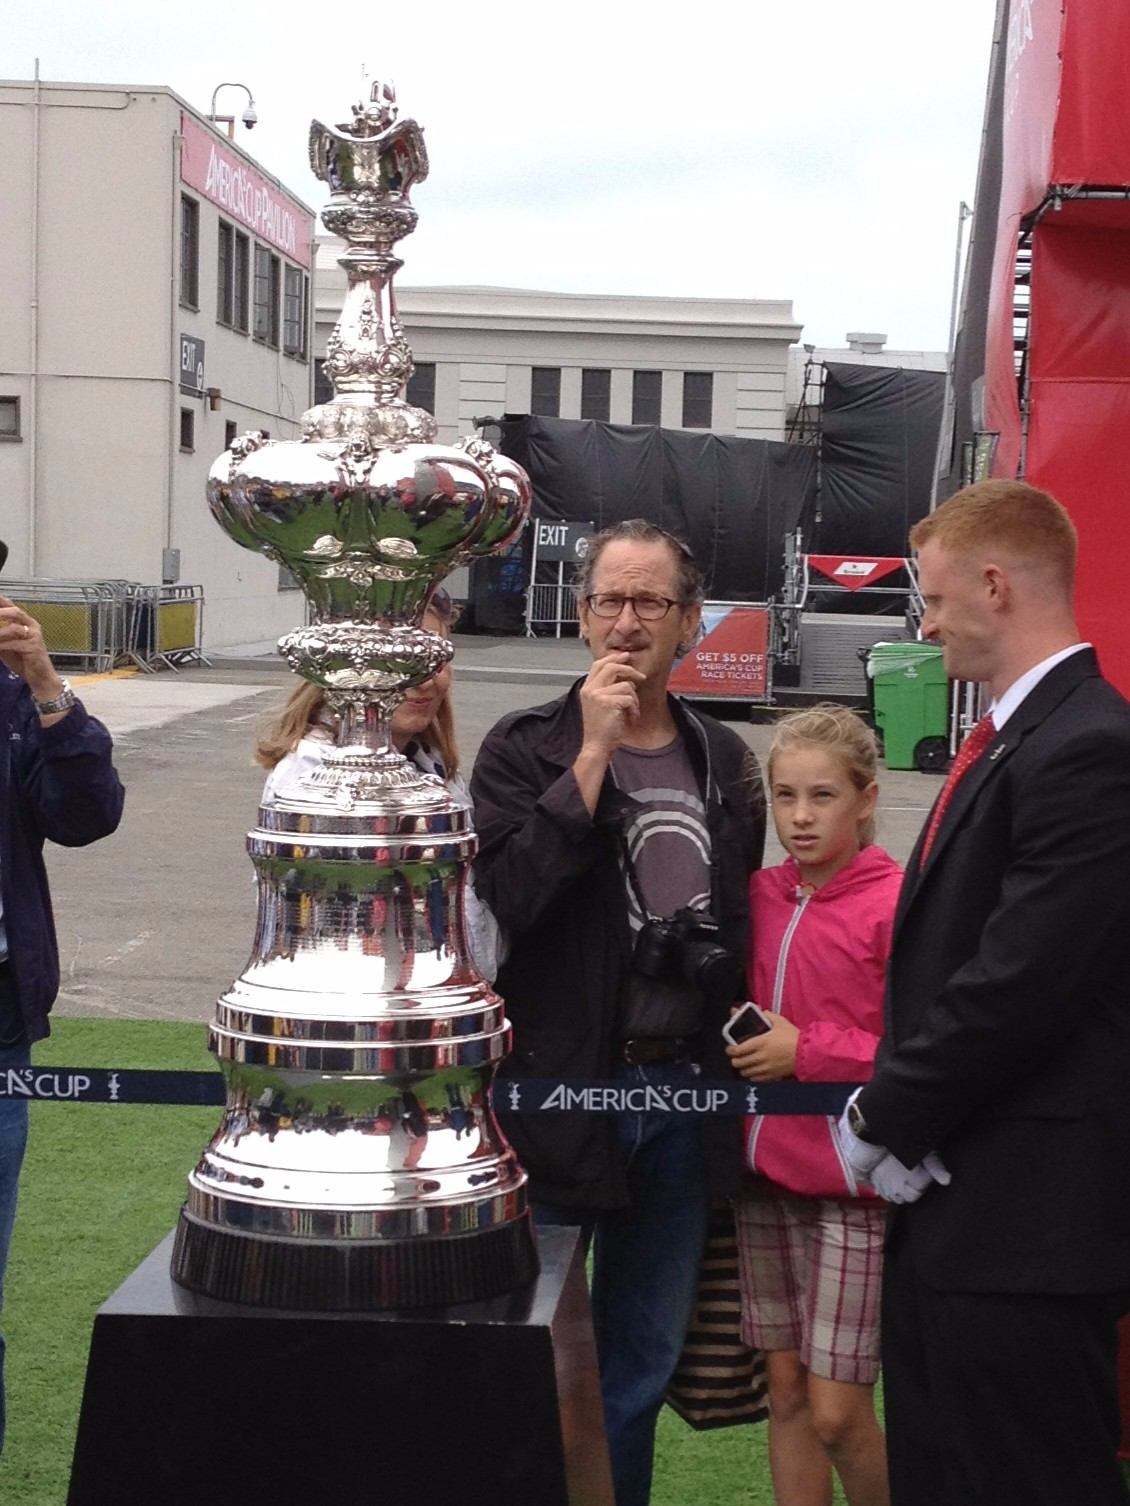 You Watching?  America's Cup Bermuda:  Sunday 3 p.m. ET / 2 p.m.CT